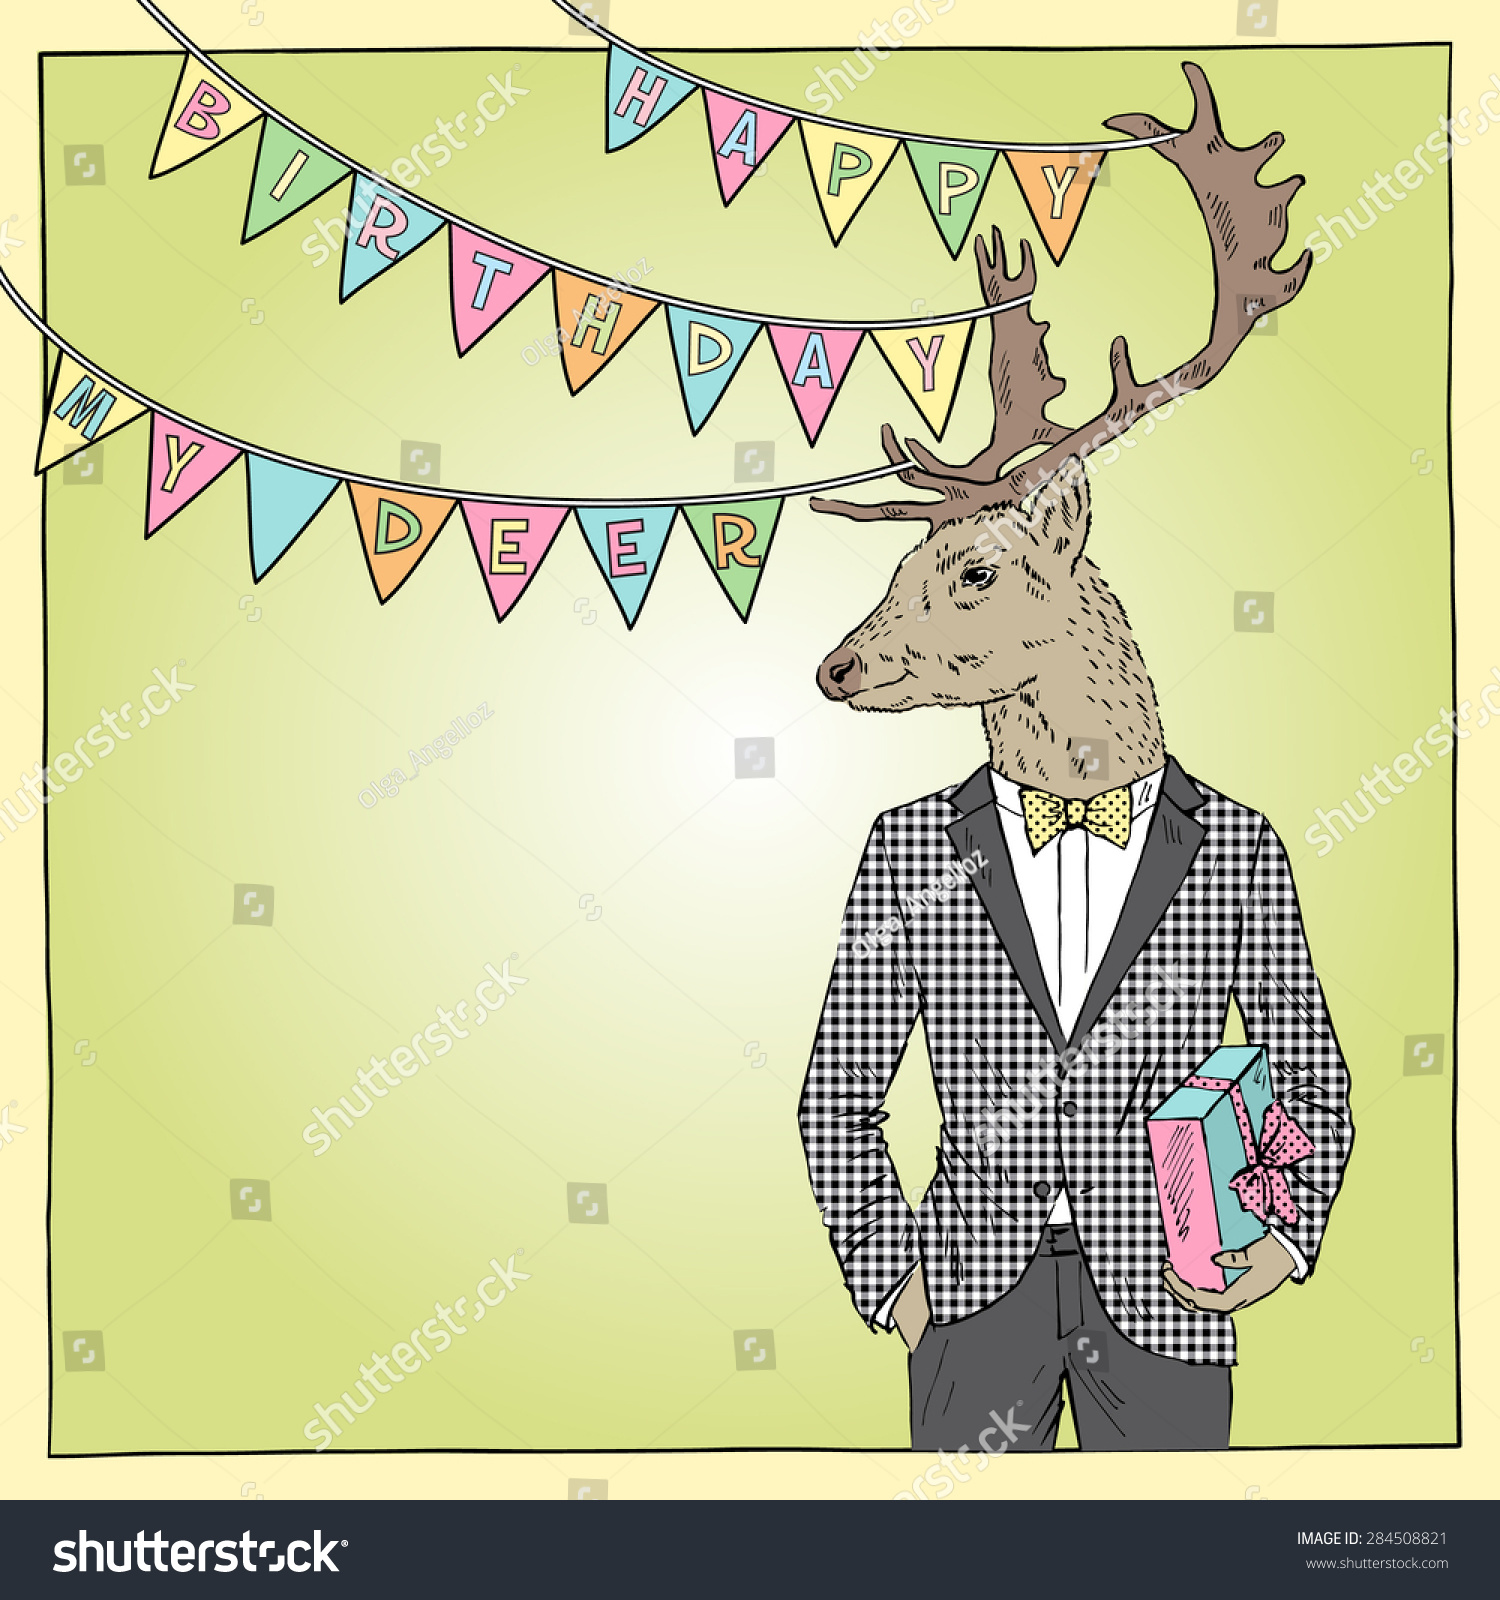 Vector bunting flags lovely celebration card with colorful paper - Hand Drawn Happy Birthday Card With Fashion Deer Boy Greeting Art Congratulatory Design